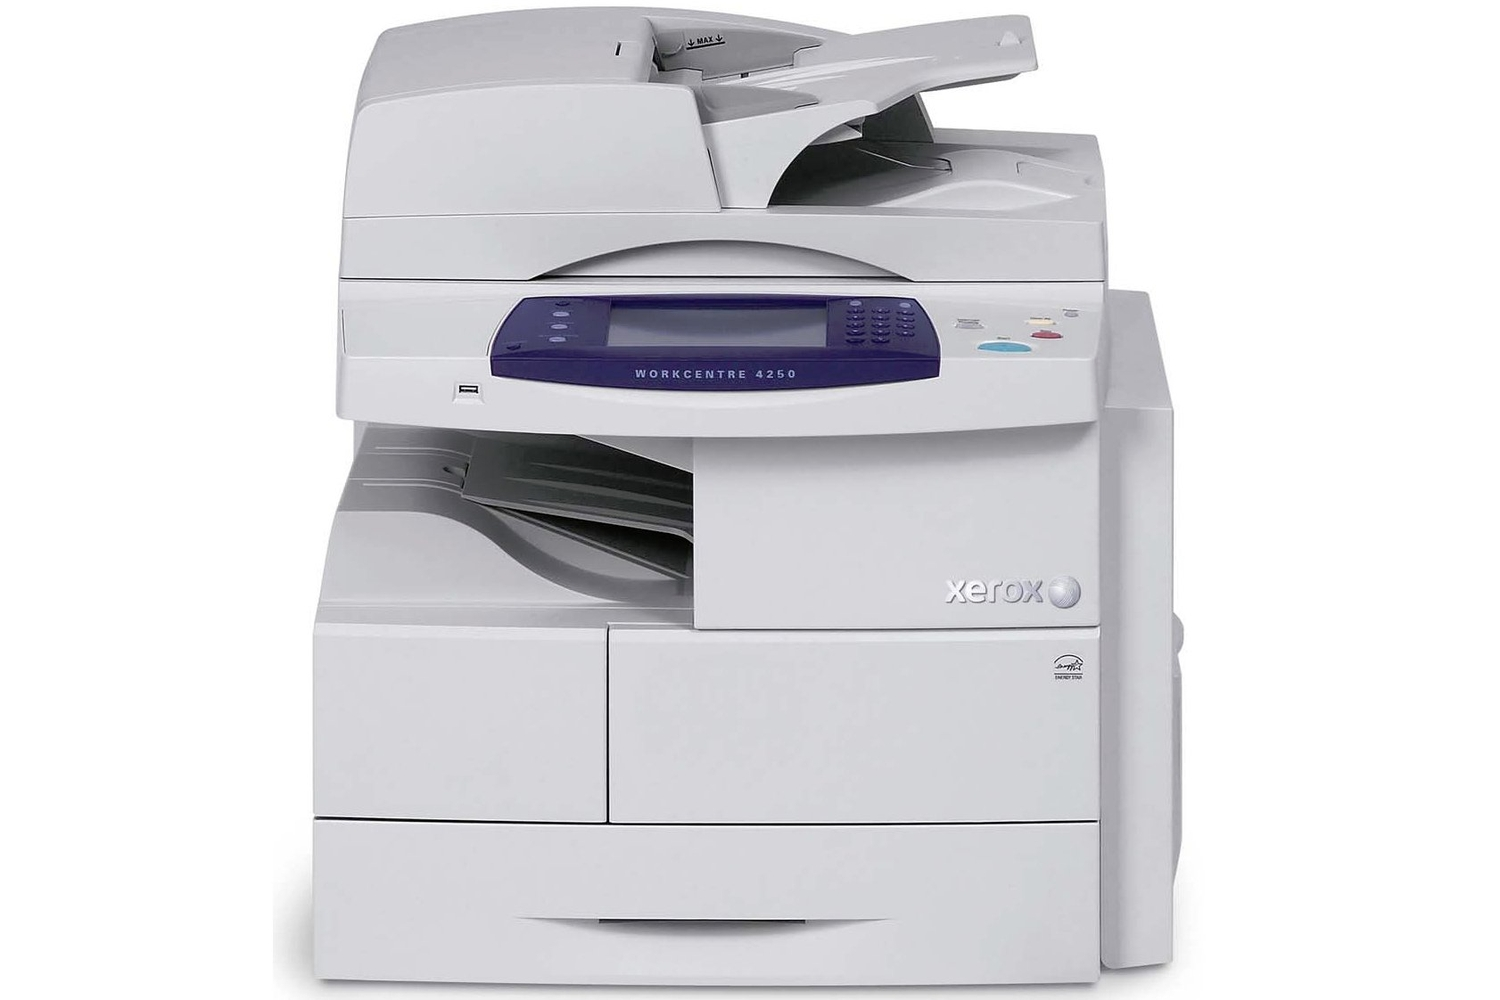 Fuji Xerox Australia Workcentre 4250 Review This Business